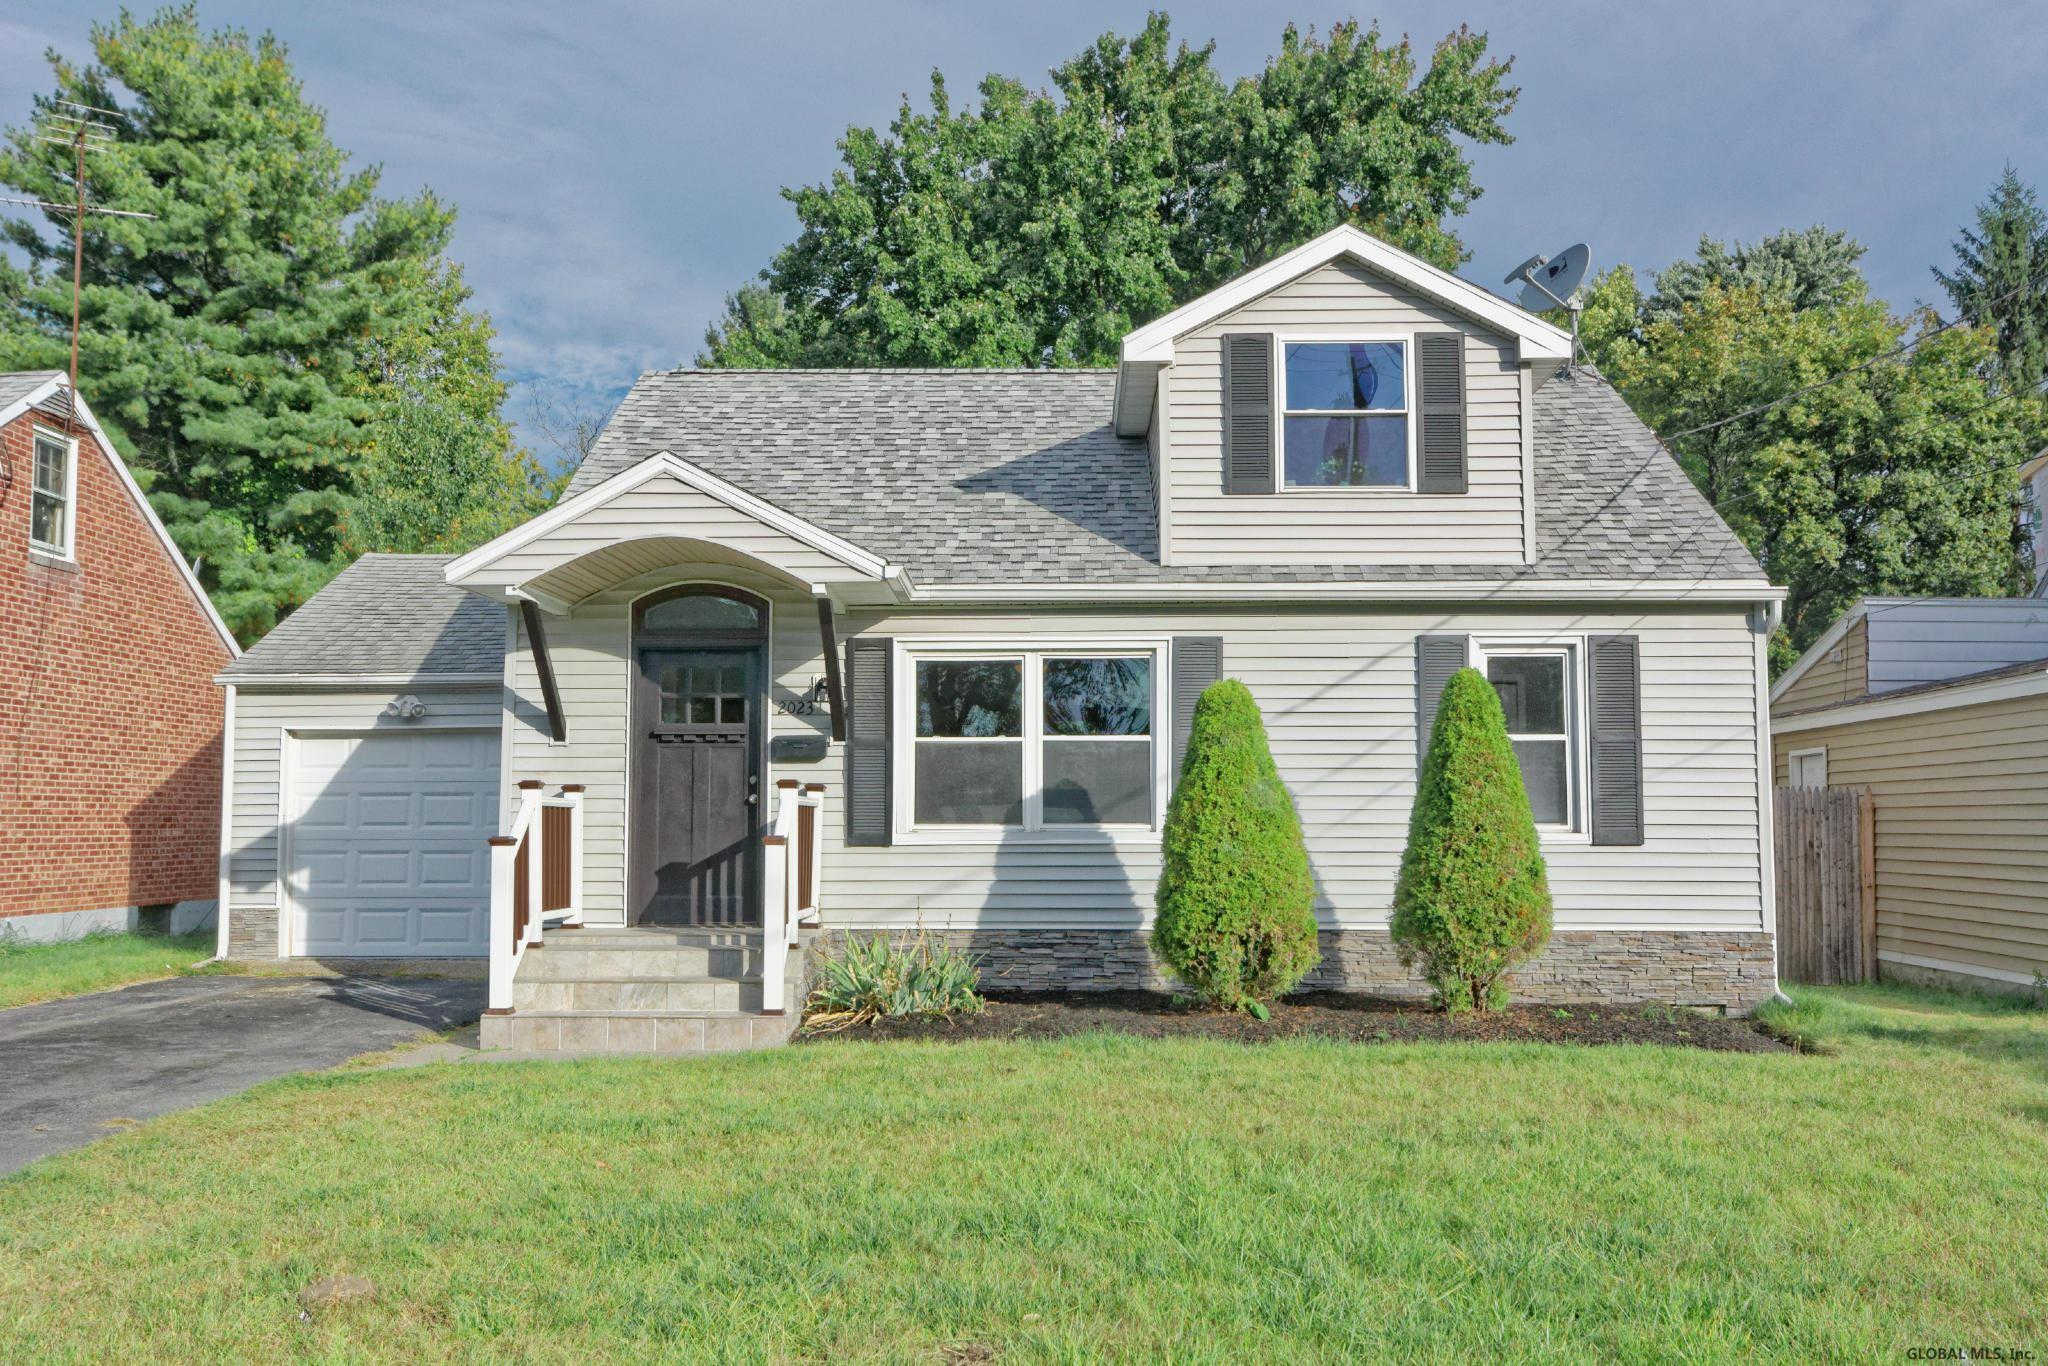 2023 Robinwood Av, Schenectady, NY 12306 now has a new price of $179,500!